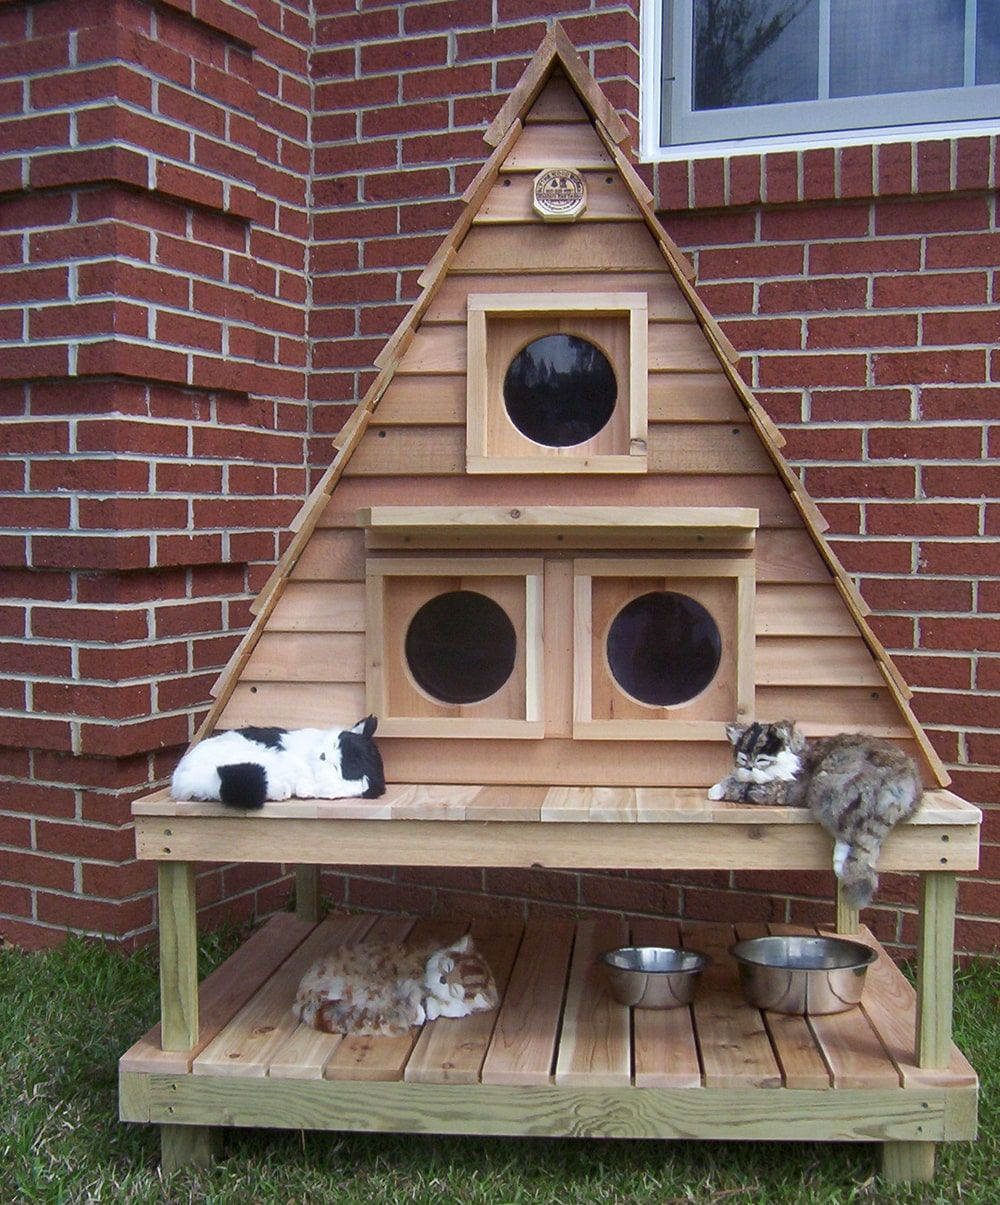 Outdoor Cat House For 3 6 Cats Customizable Free Shipping Available Cat House Diy Cat House Plans Outdoor Cat House